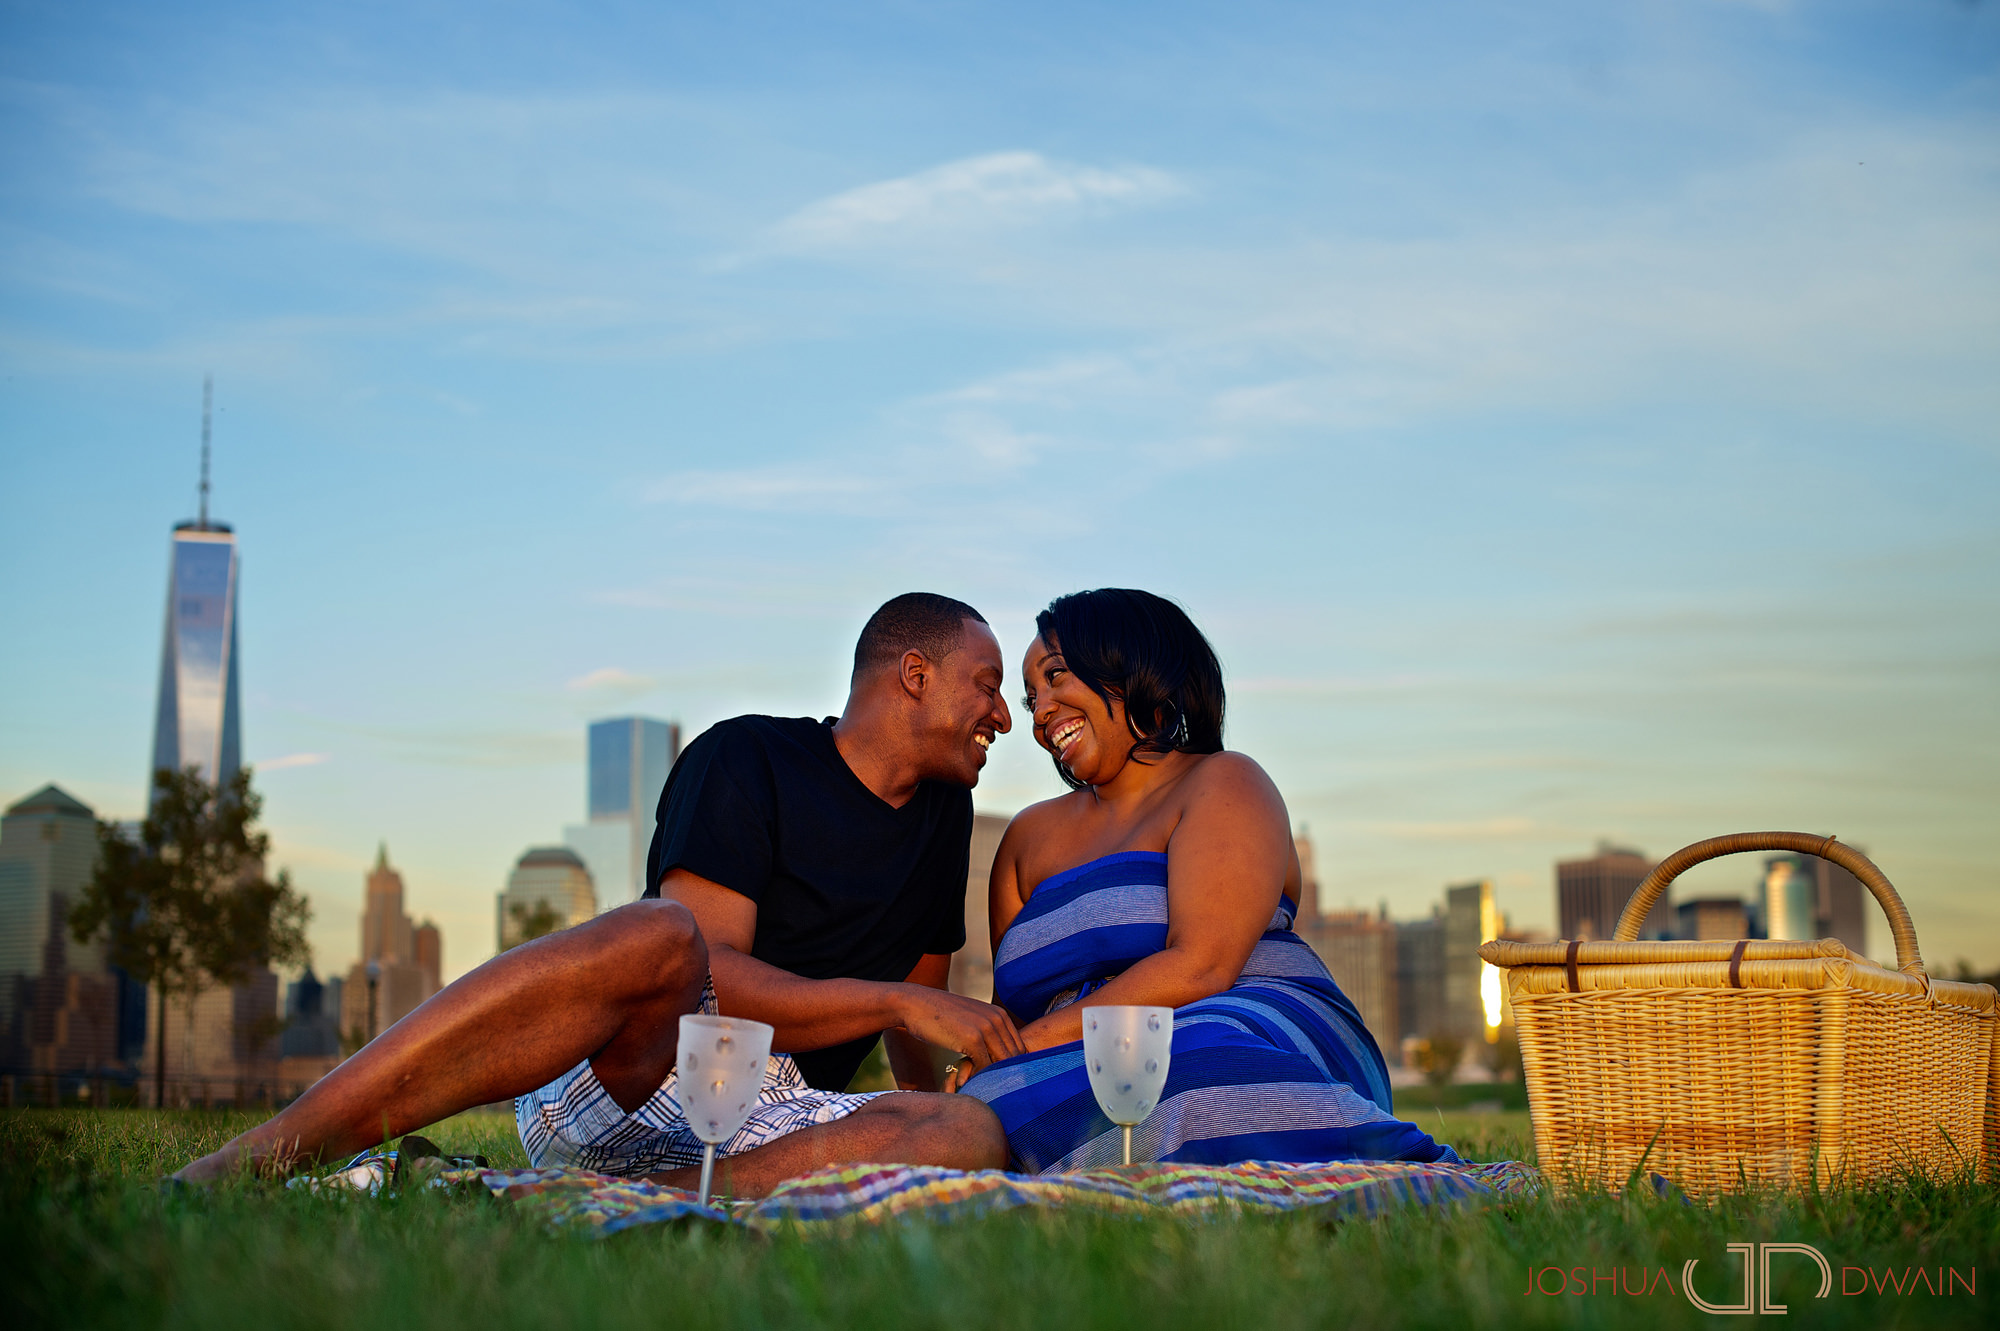 Leah & Chris Engagement Photos at Liberty State Park